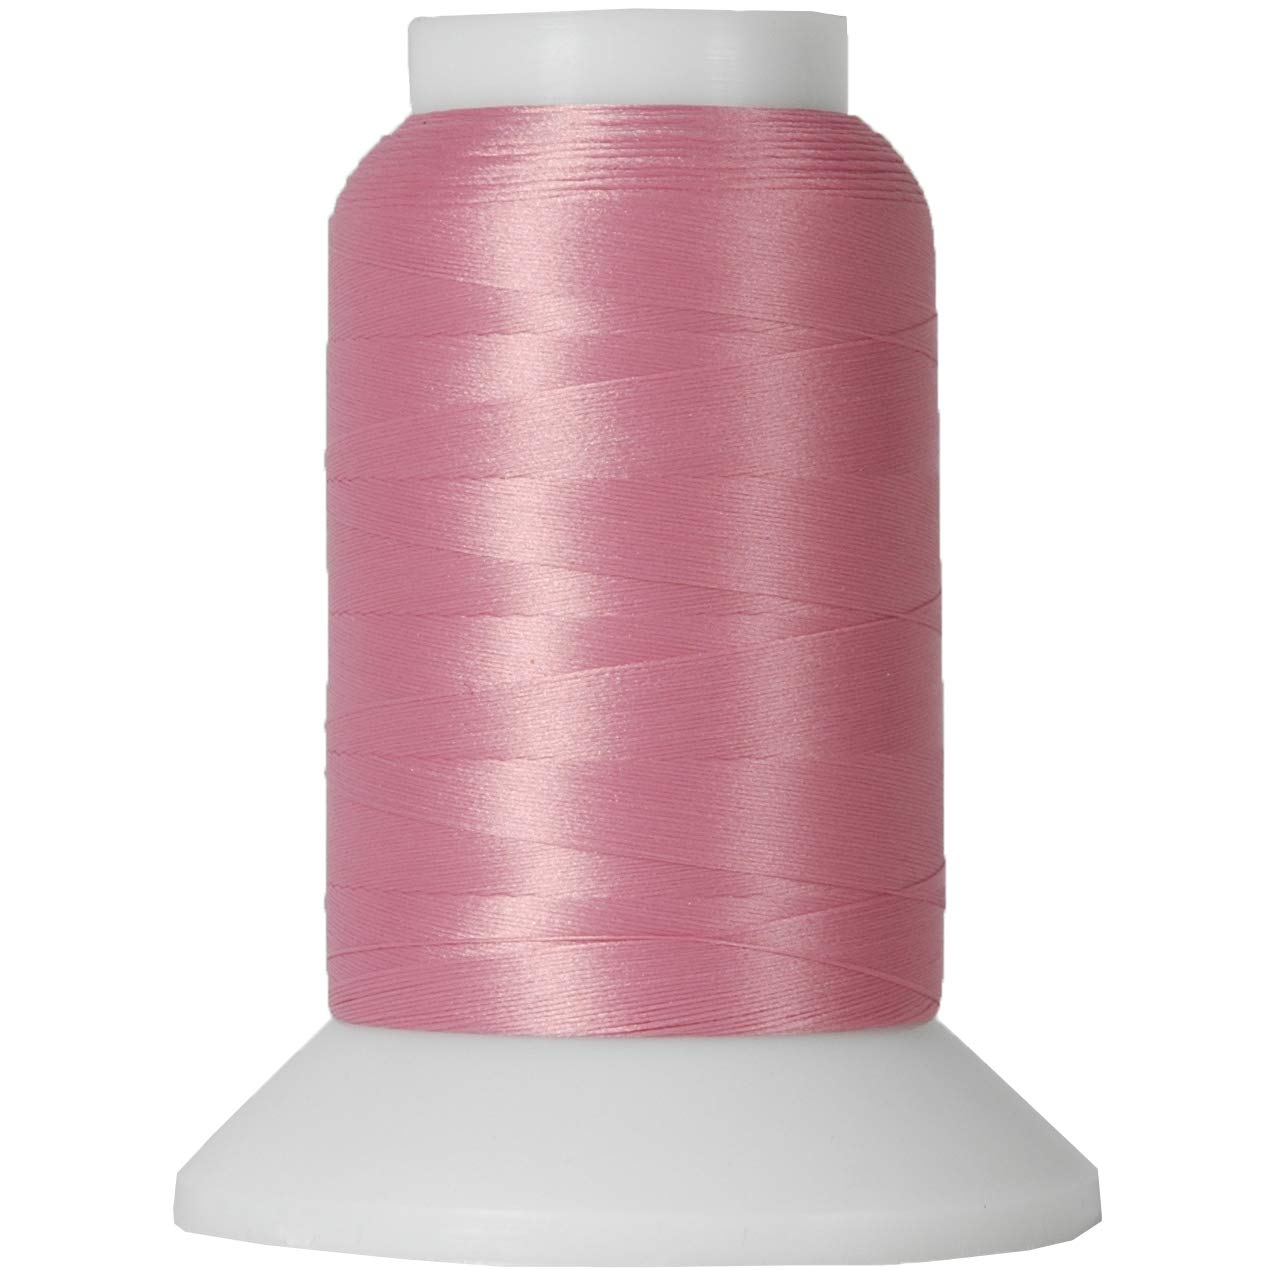 Threadart Wooly Nylon Thread - 1000m Spools - Color 9112 - DUSTY ROSE - Serger Sewing Stretchy Thread - 50 Colors Available